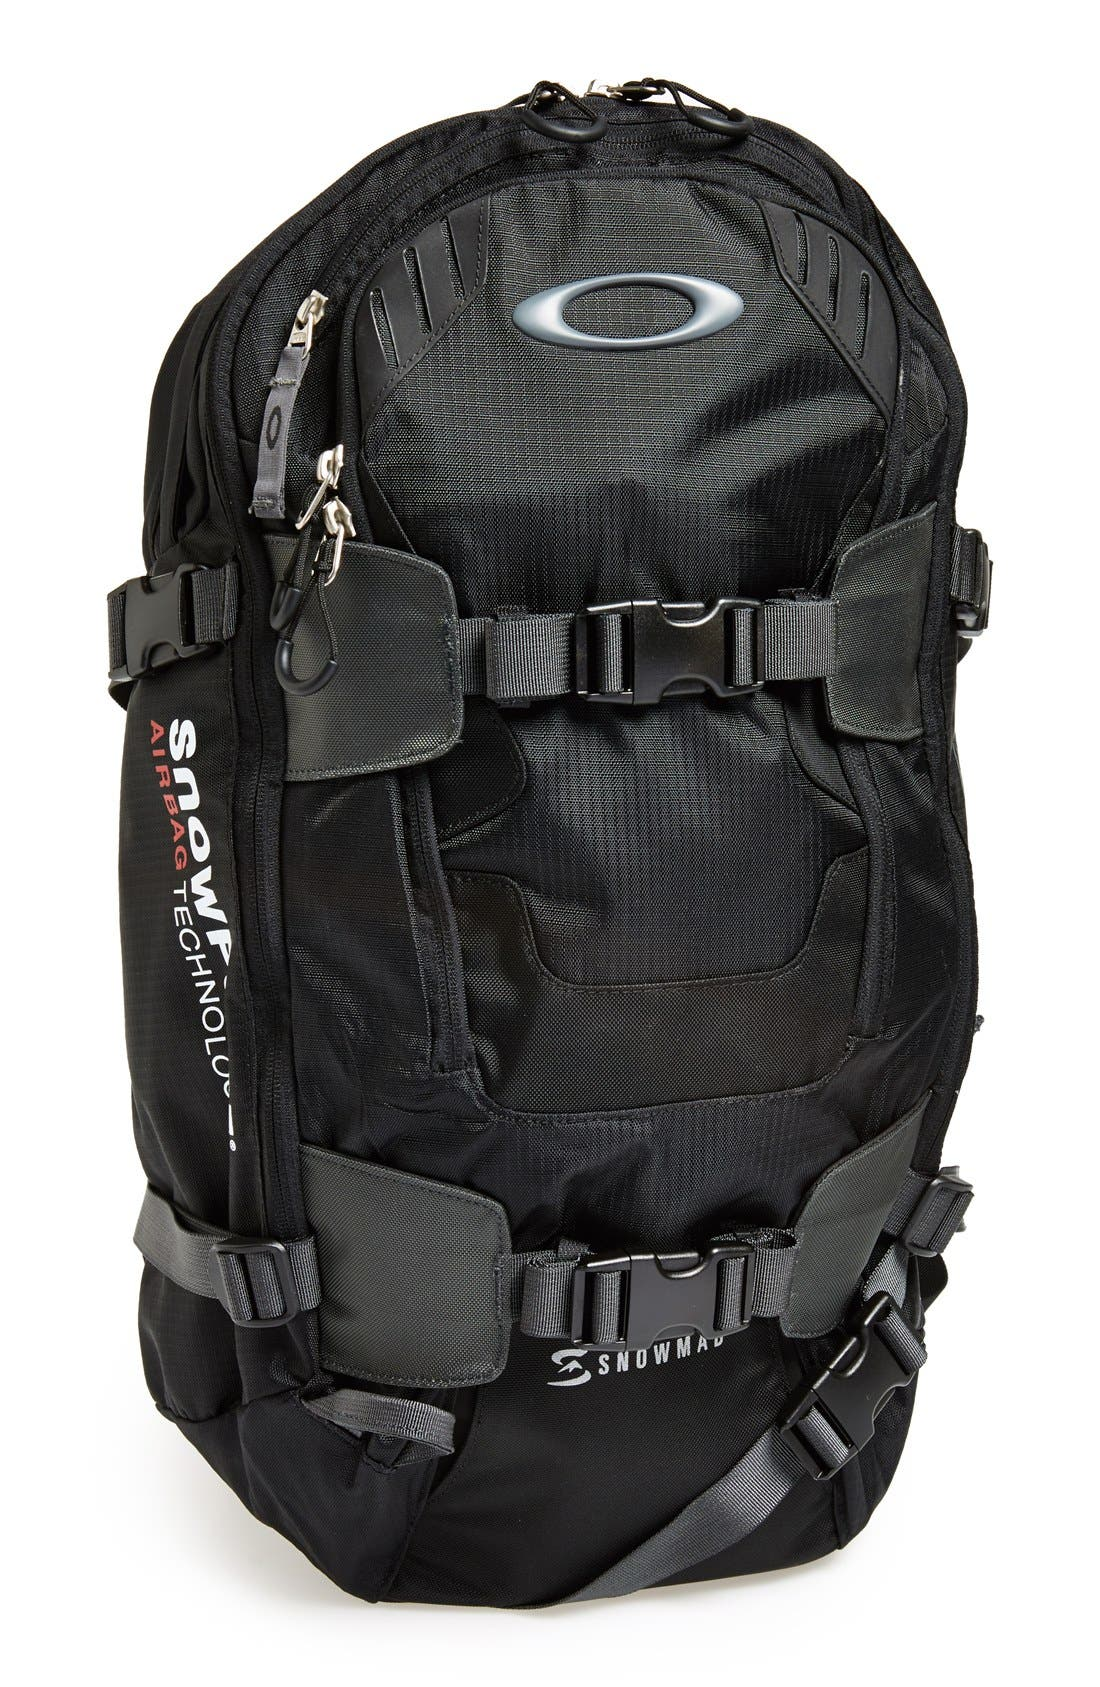 OAKLEY,                             'Snowmad' Backpack,                             Main thumbnail 1, color,                             001